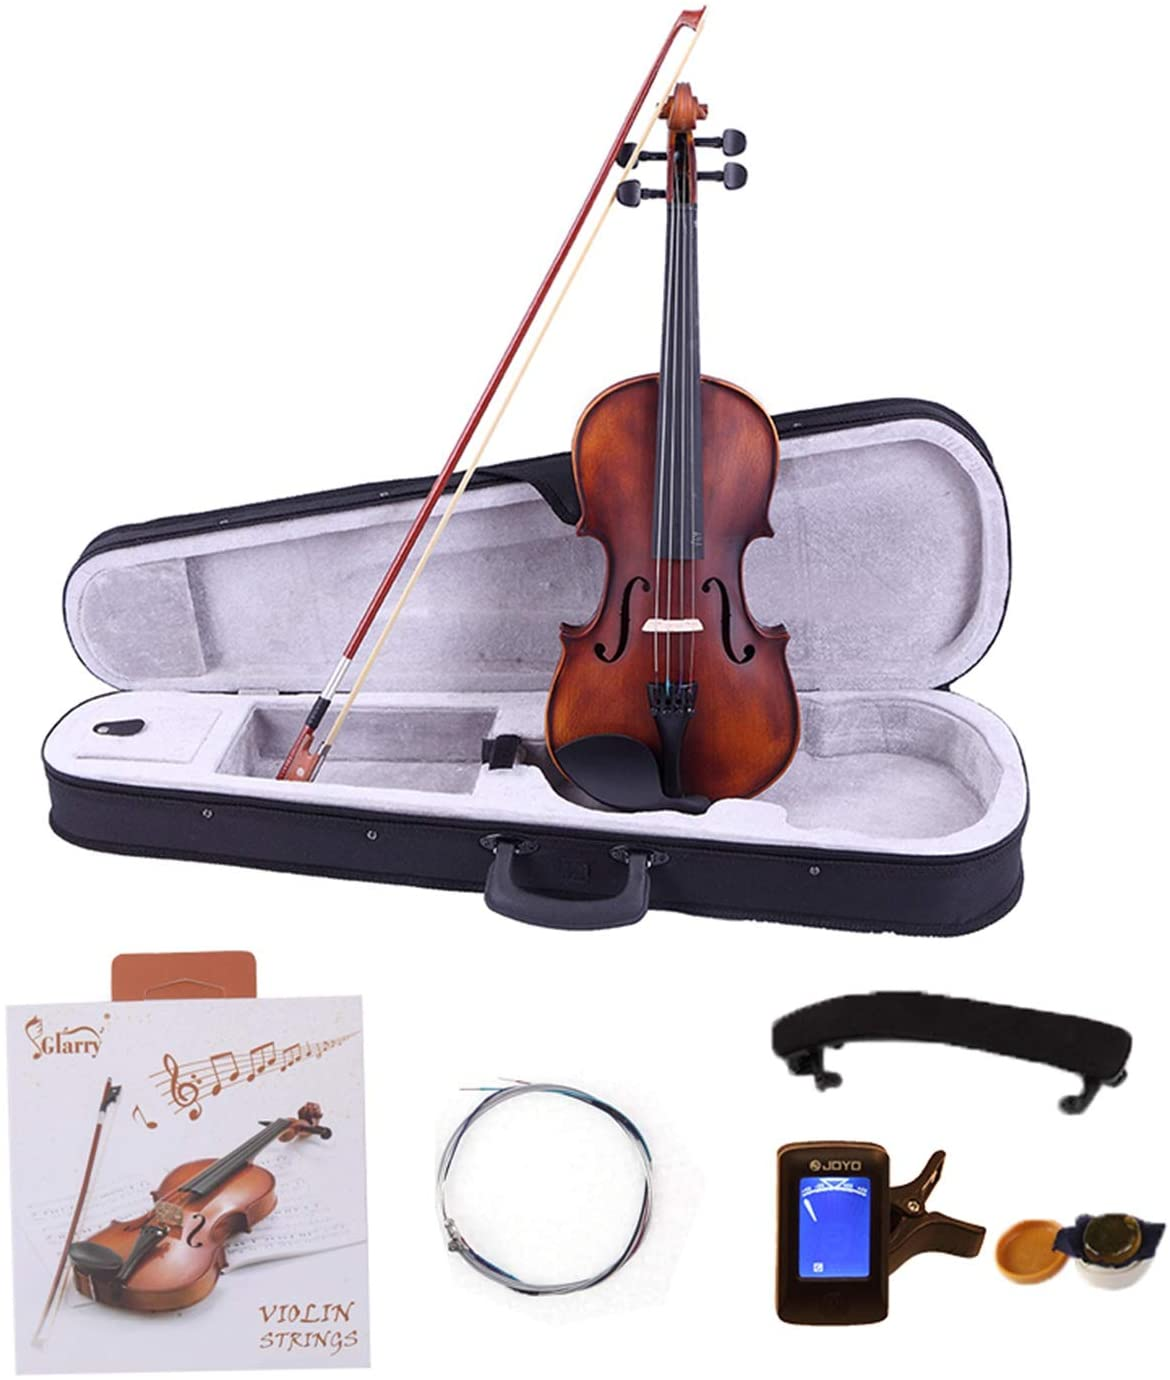 Glarry 4/4 Classic Solid Wood Violin Case Bow Violin Strings Rosin Shoulder Rest Electronic Tuner - Violin Set for Kids Beginners Students Adults